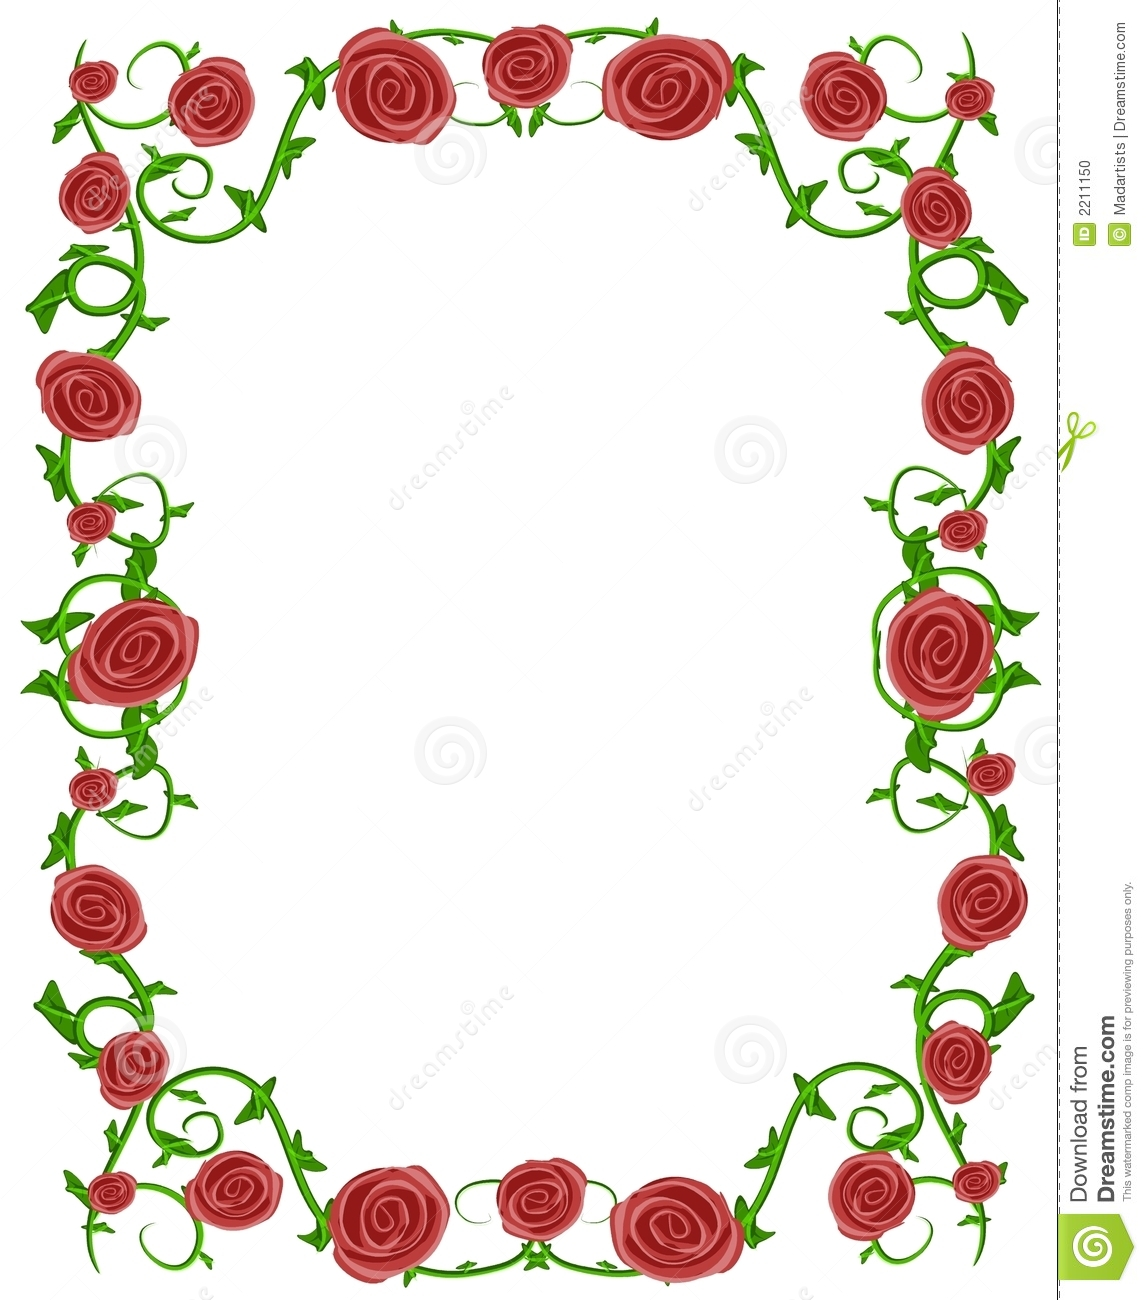 red and pink roses frame border for creating borders on paper or for